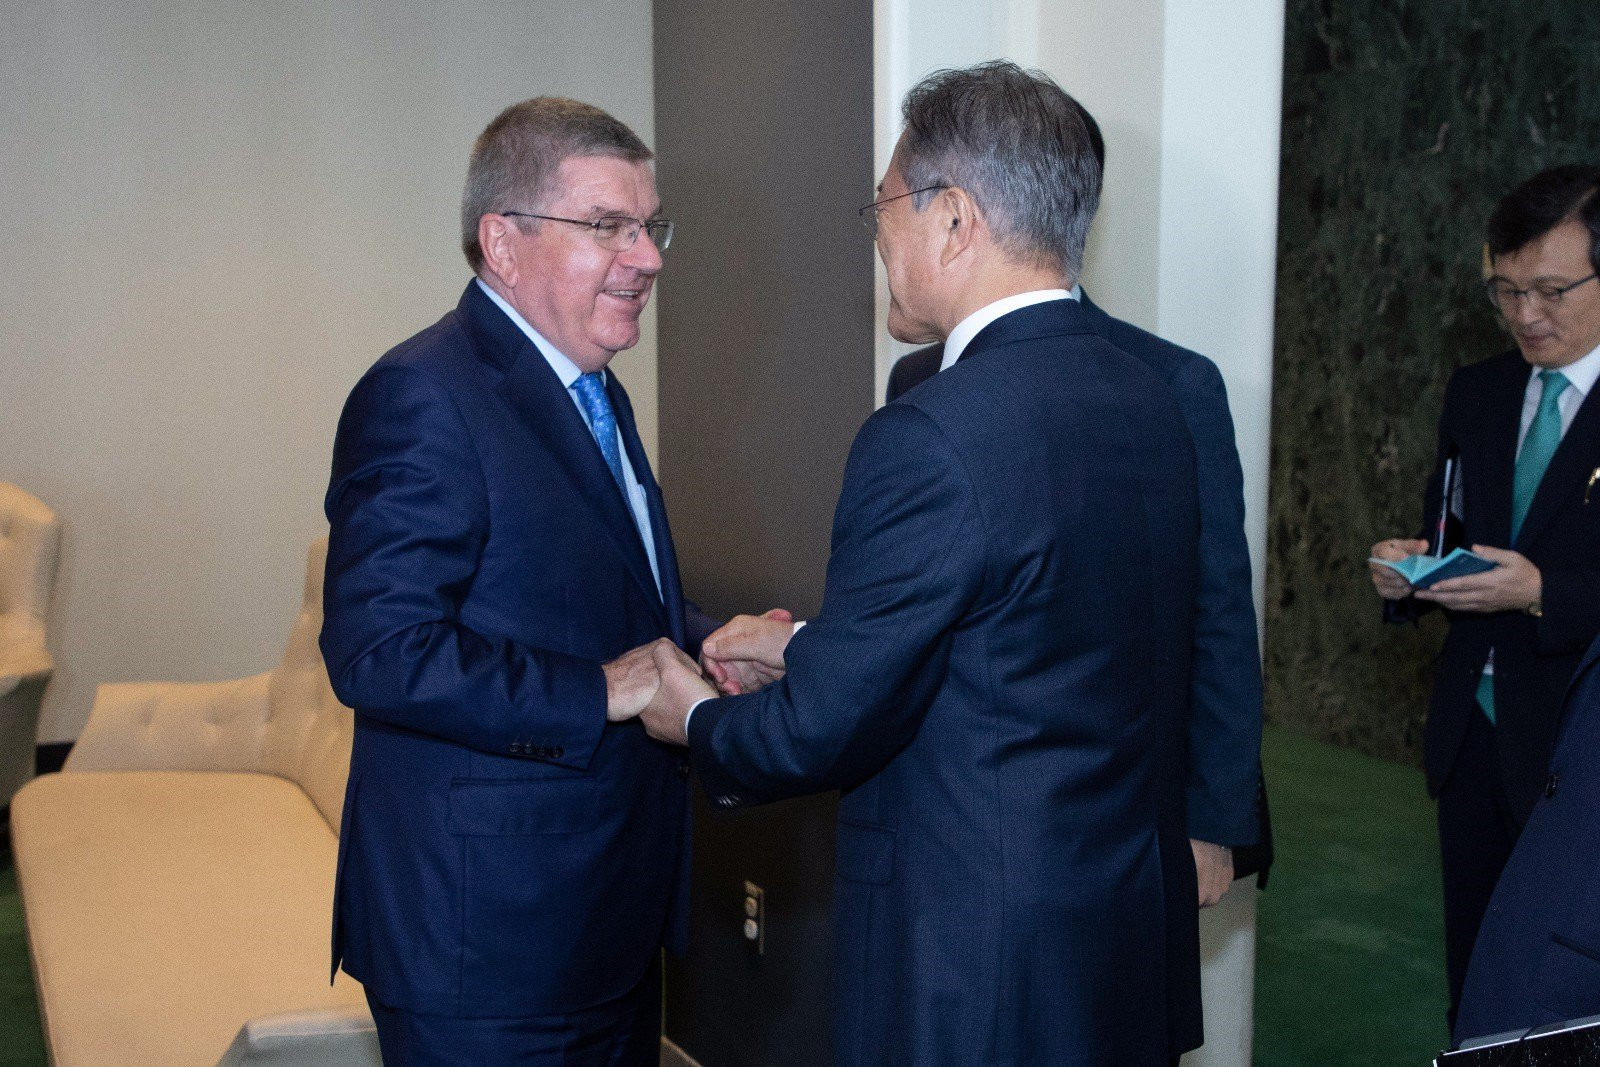 IOC President Thomas Bach held talks in Seoul last month regarding the joint bid for the 2032 Olympic and Paralympic Games with South Korean President Moon Jae-in ©IOC